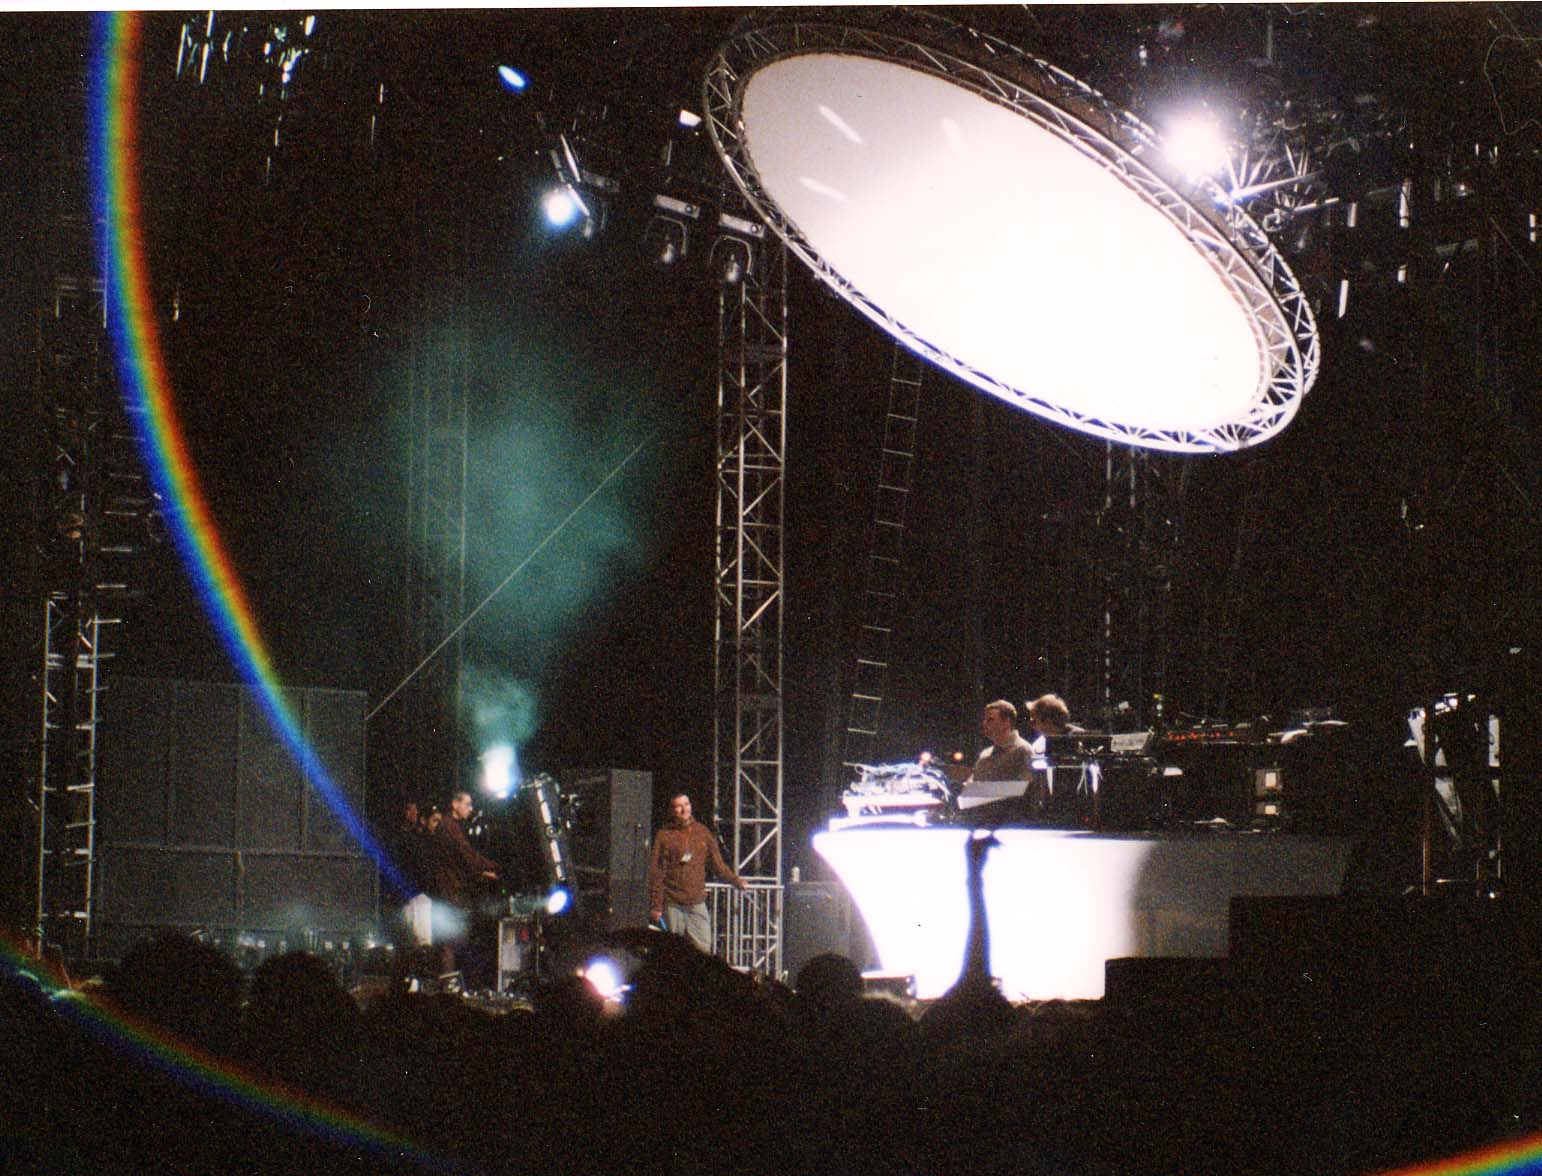 The Chemical Brothers work the crowd at Coachella 2002